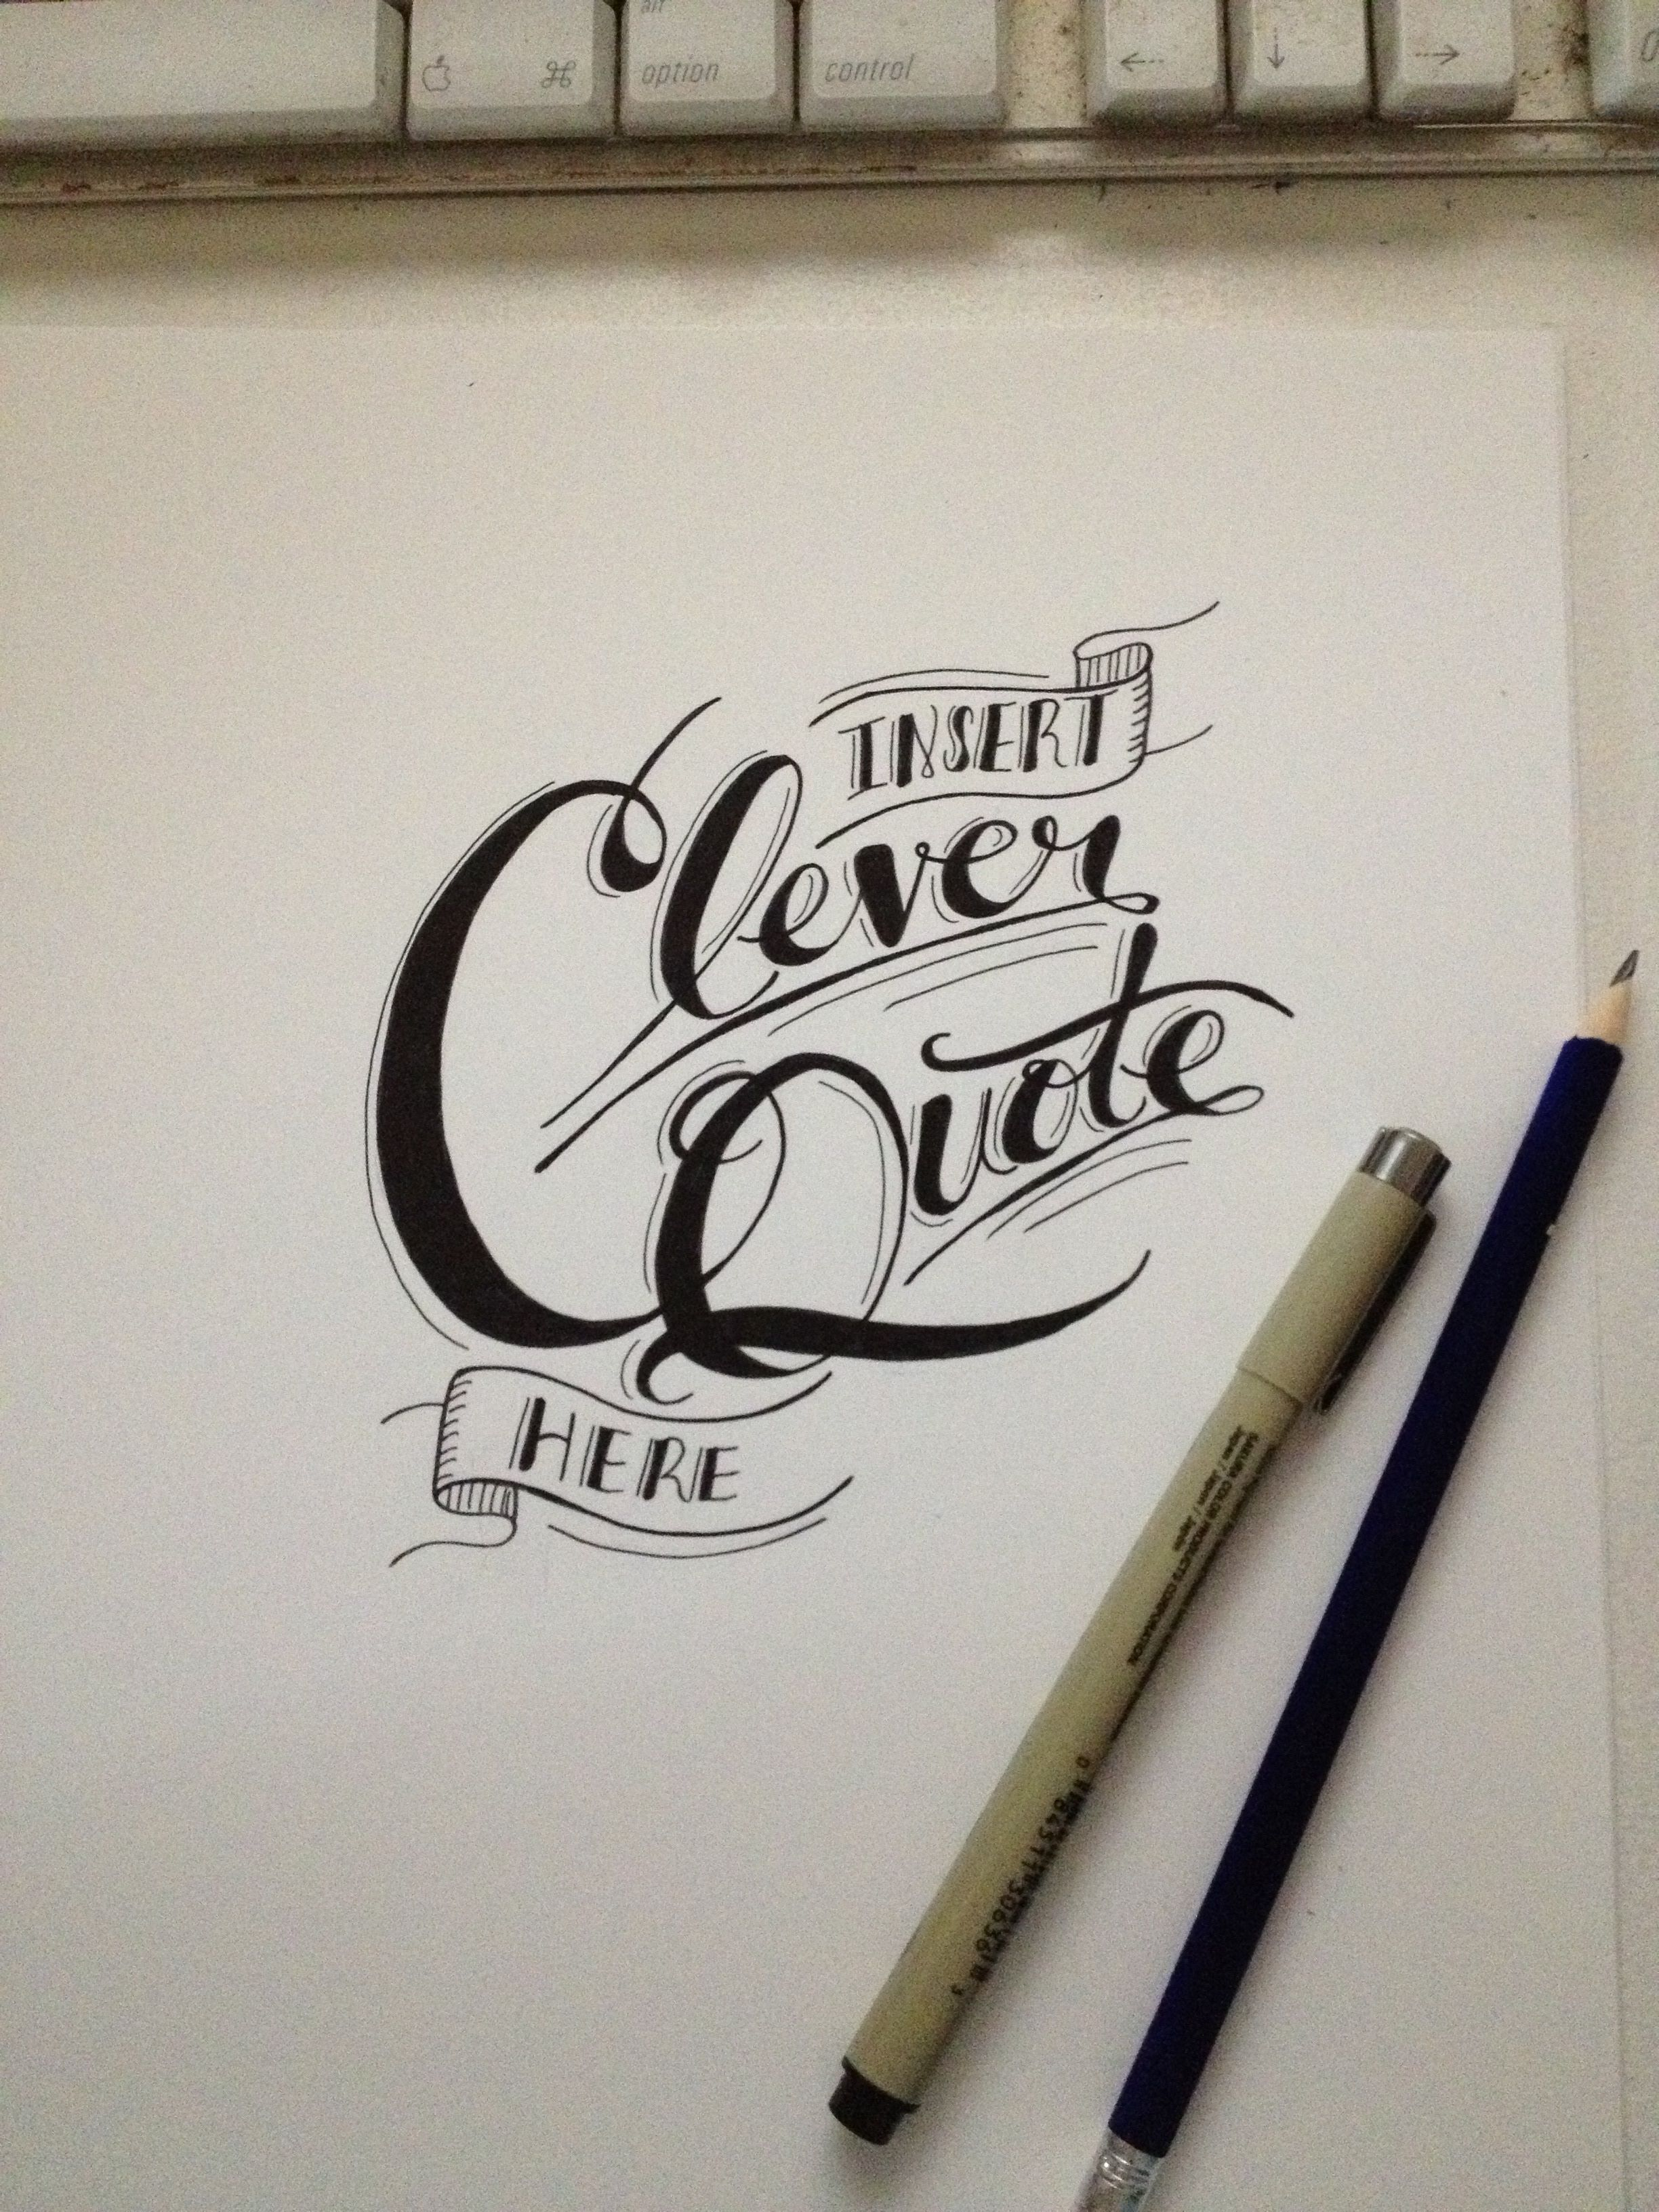 Insert clever quote here #handlettering